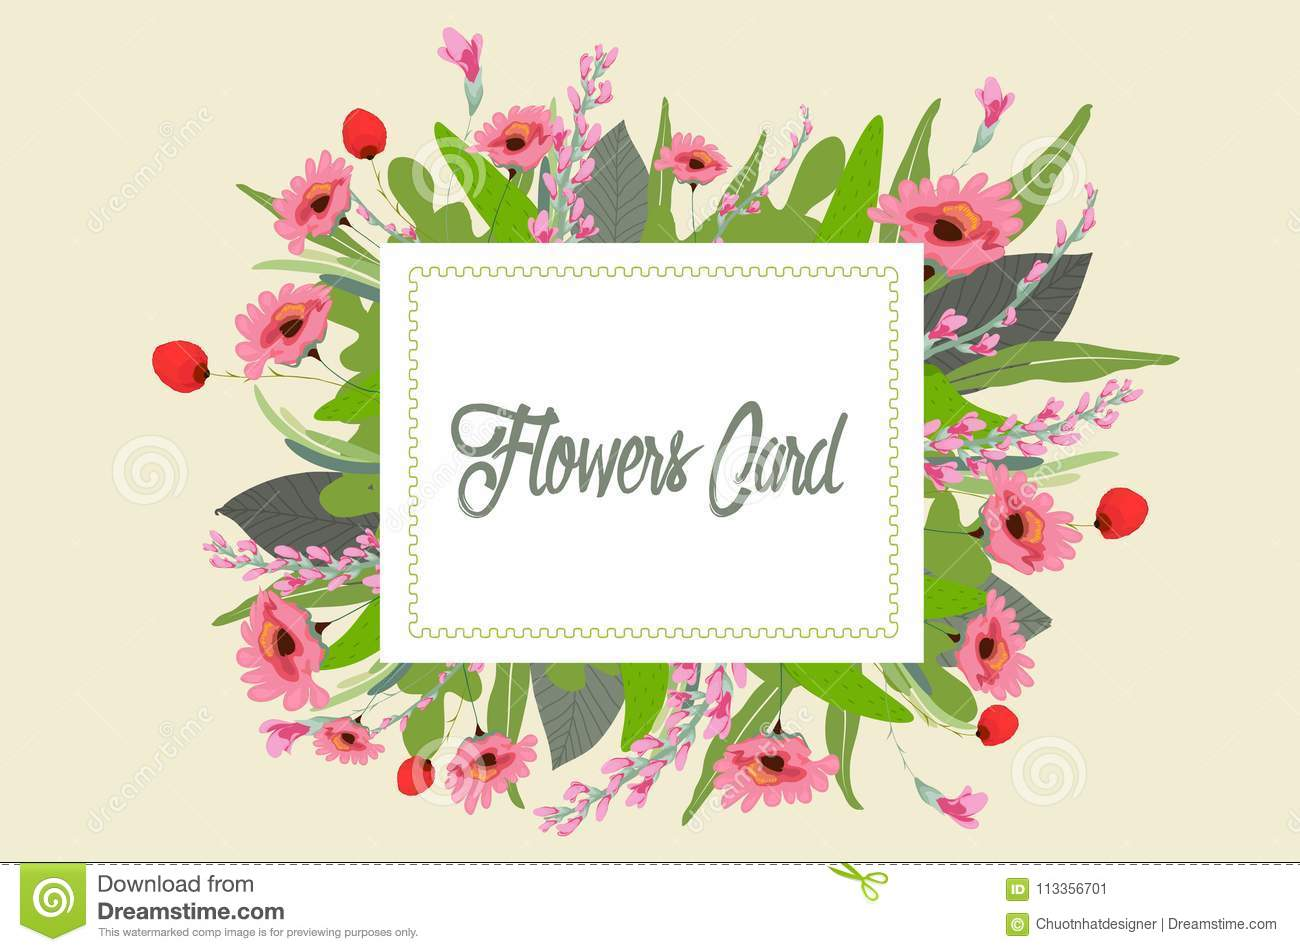 Gouache Flowers Clipart Pretty Flowers Wedding Stock